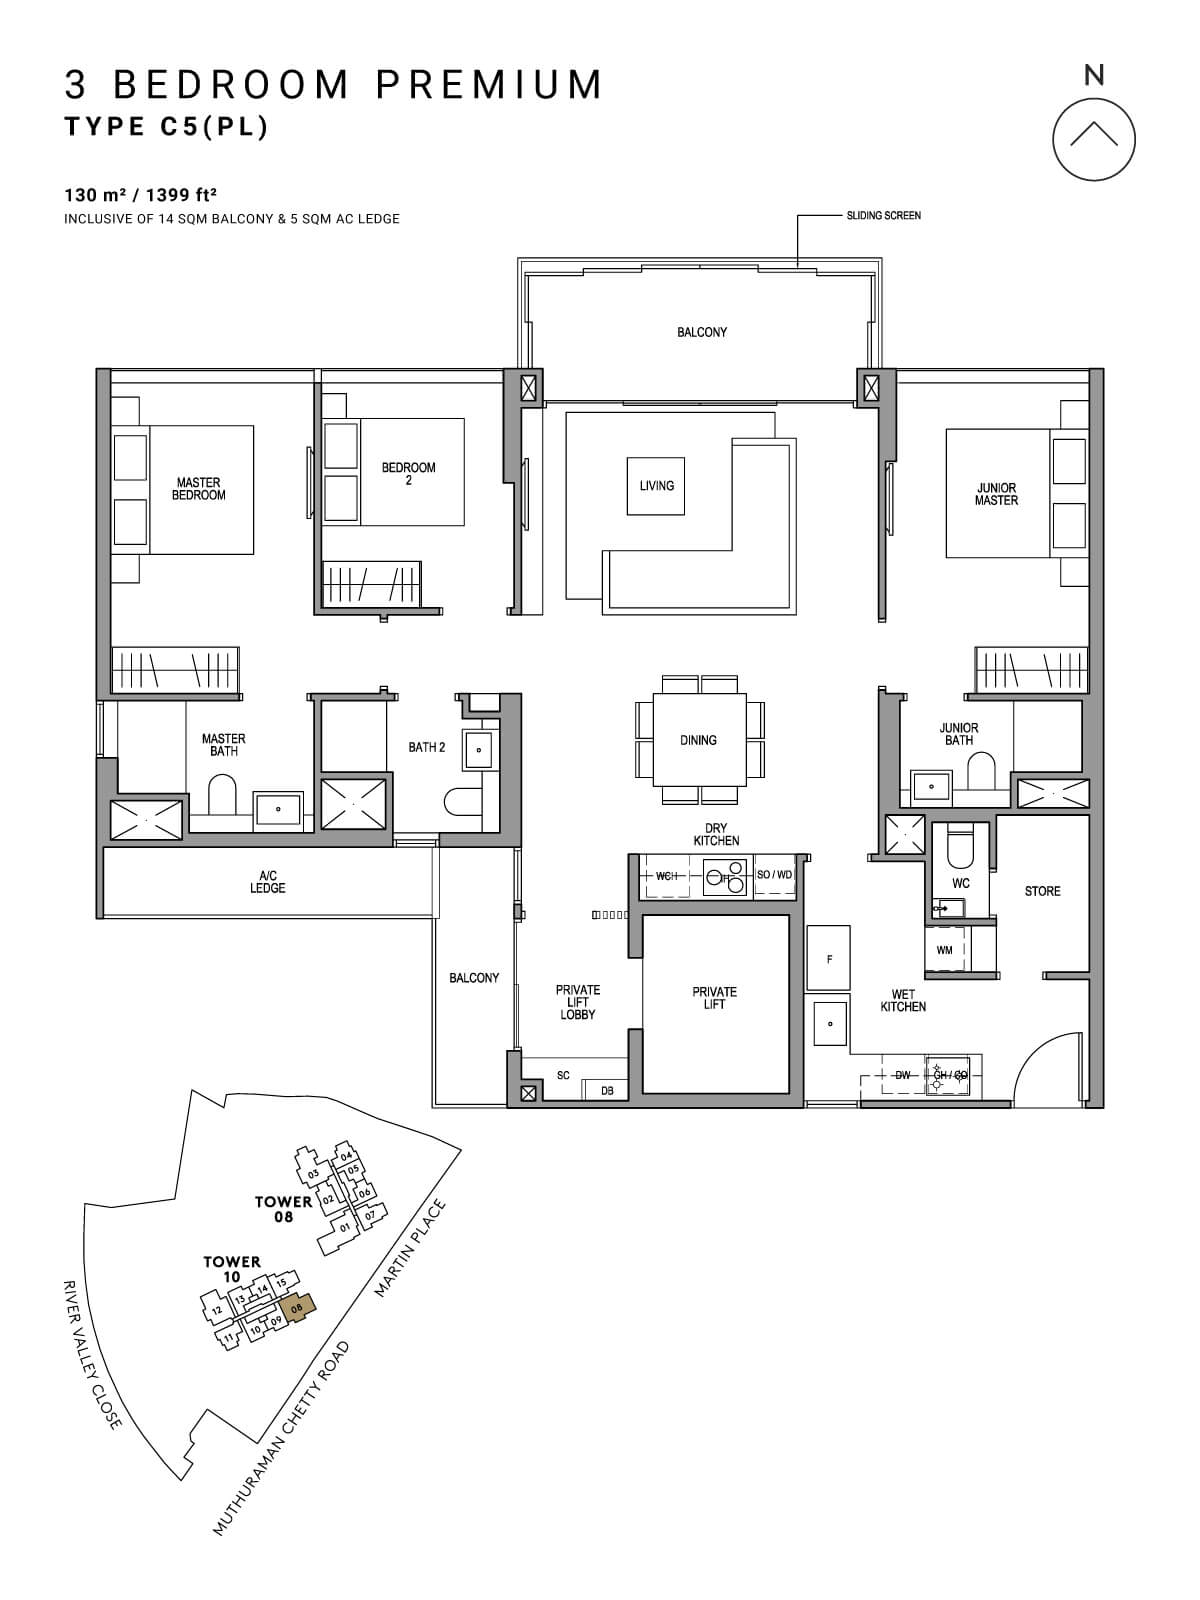 Martin Modern Floor Plan 3 Bedroom Premium Type C5(PL)